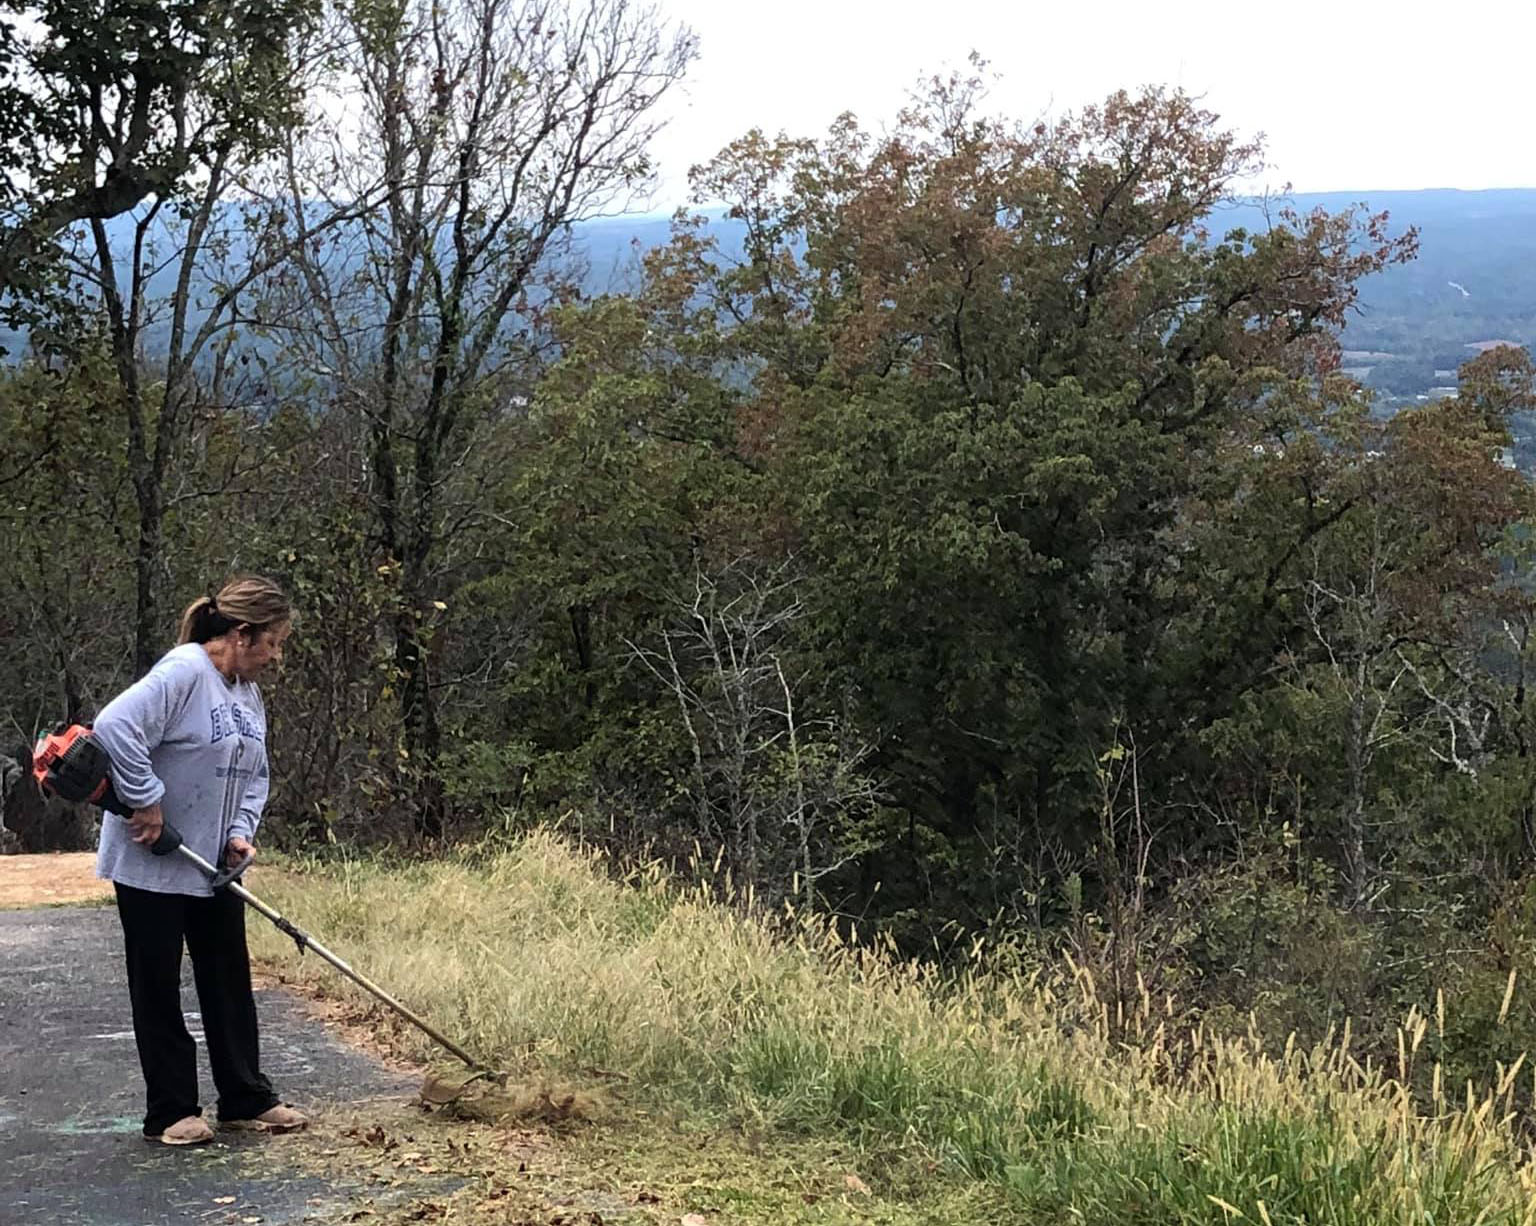 Christine Brasher, pictured above, weed eating the grass along the Chimney Peak Mountain. (Courtesy of Christine Brasher)